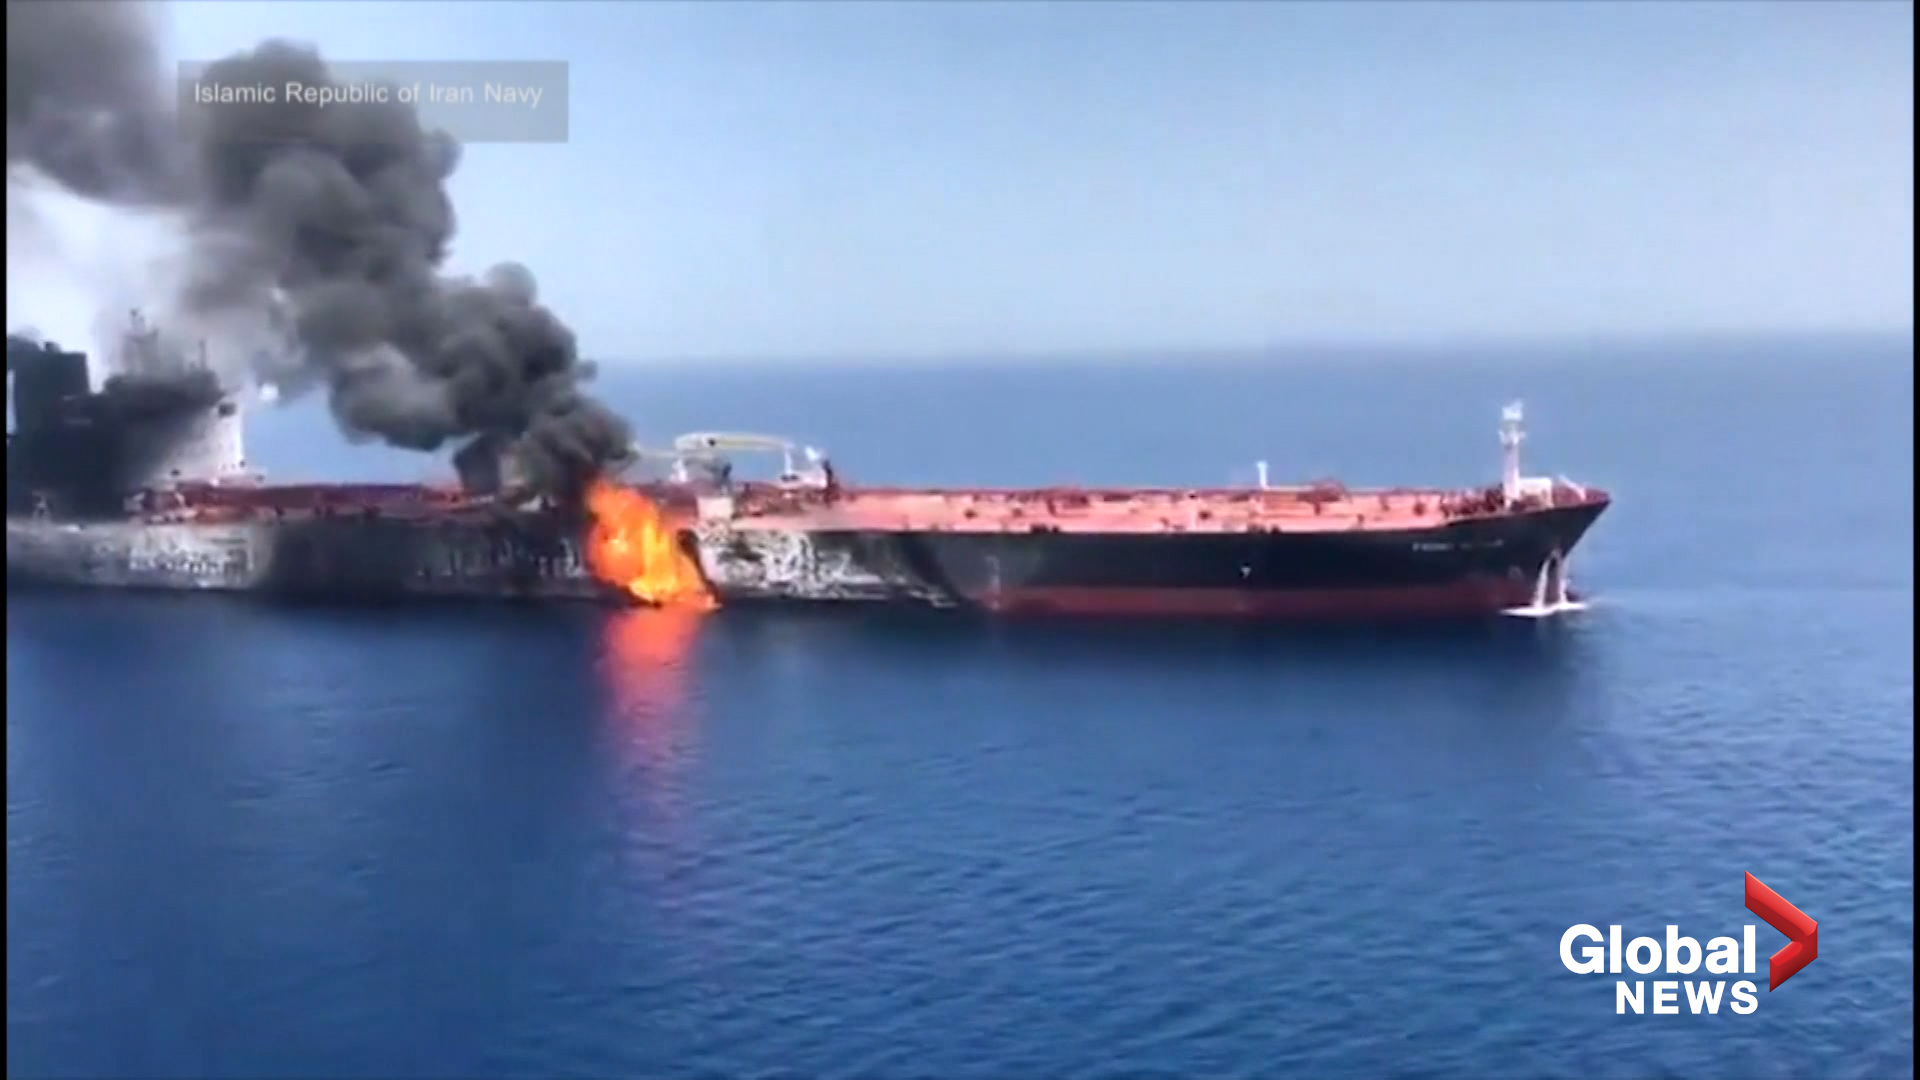 Iran's responsibility for oil tanker attacks proven by new photos, Pentagon says